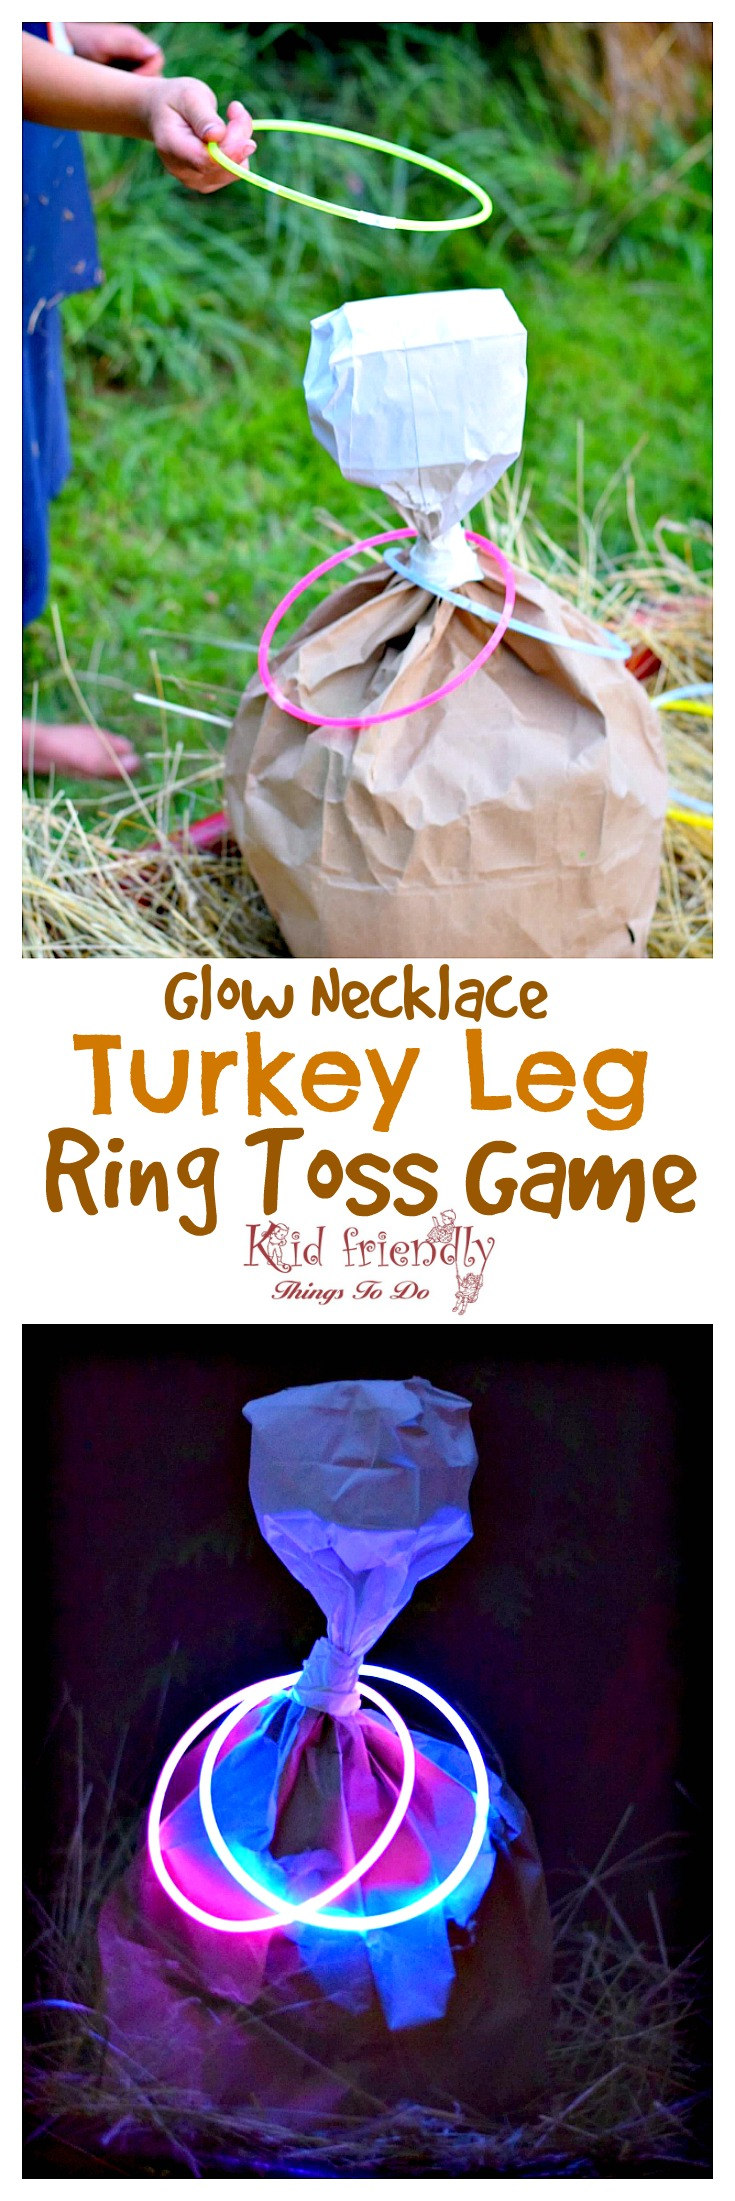 Turkey Leg Ring Toss Thanksgiving Game for Kids and Family - Use glow in the dark necklaces for night time fun! Perfect for preschool and elementary school parties. It's so easy to make and fun for everyone! fall and harvest party idea - www.kidfriendlythingstodo.com